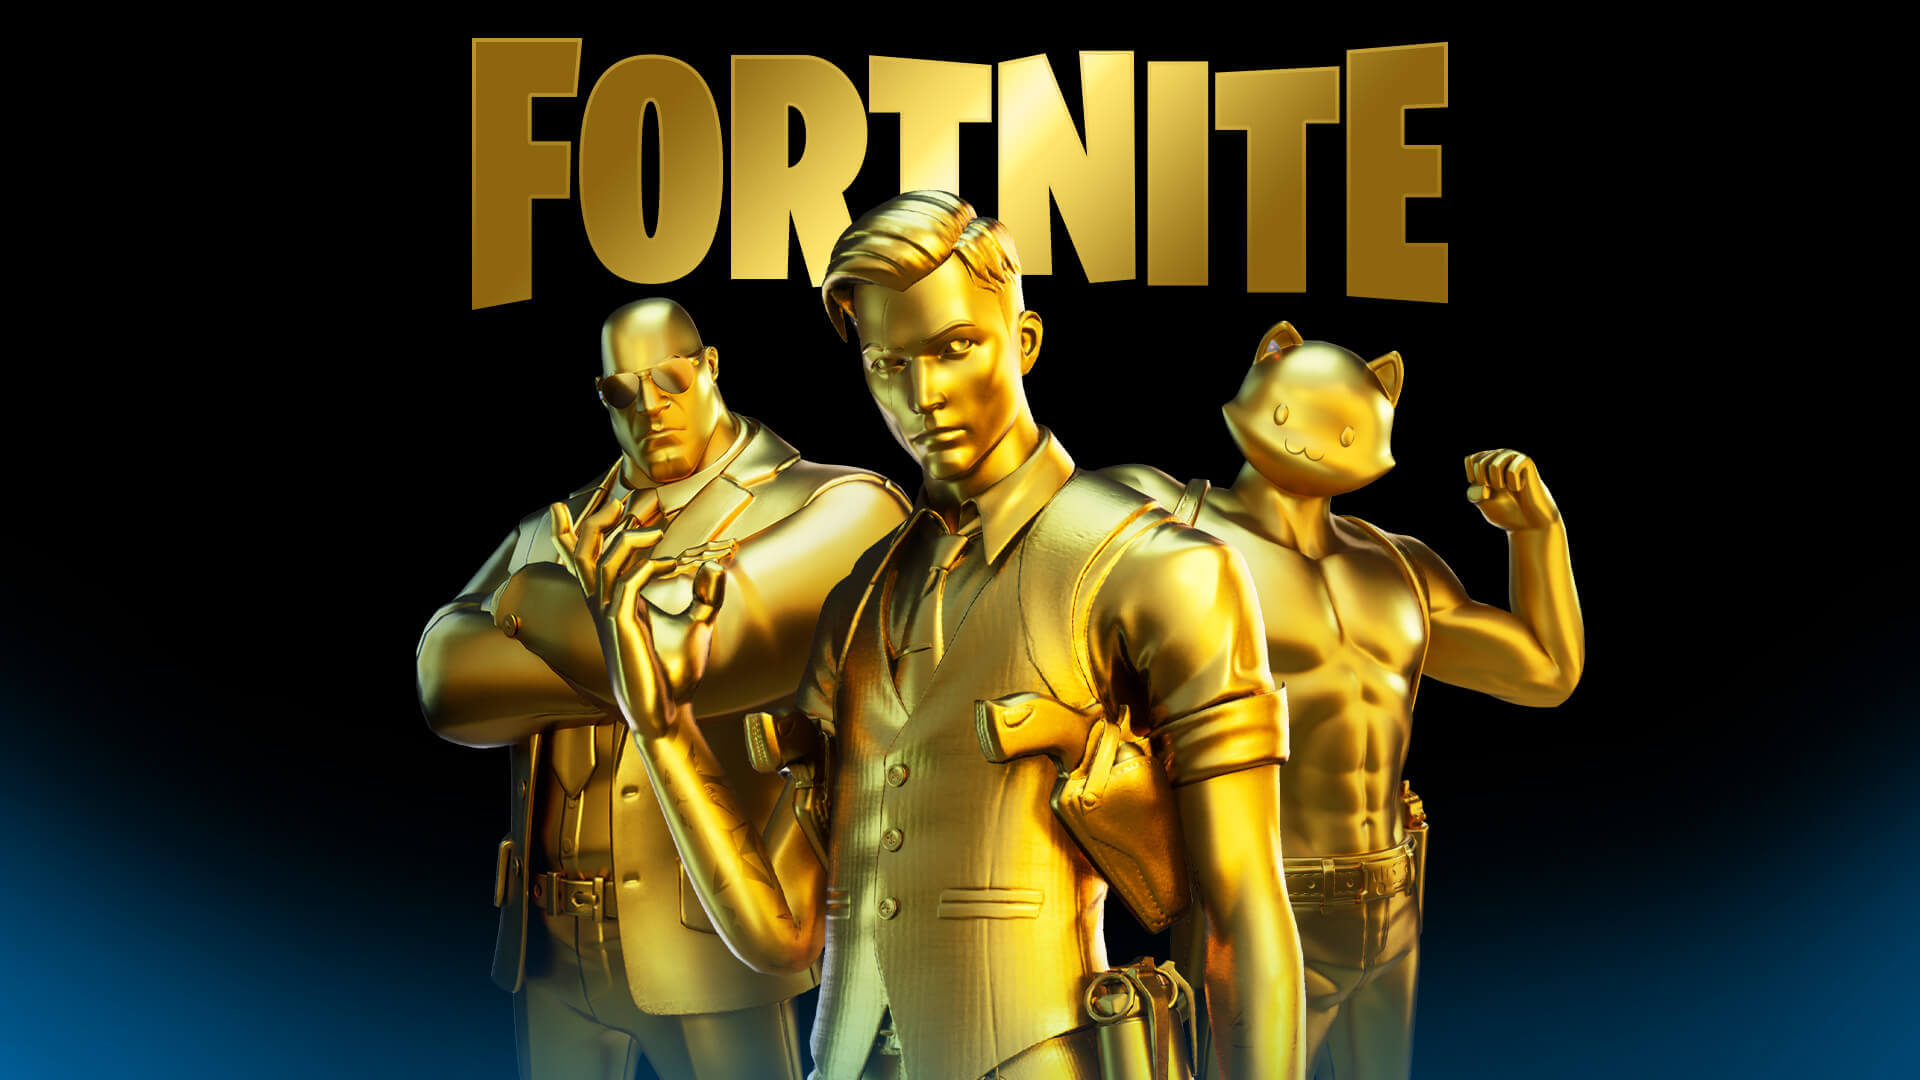 Epic Games delays the launch of Fortnite's next season